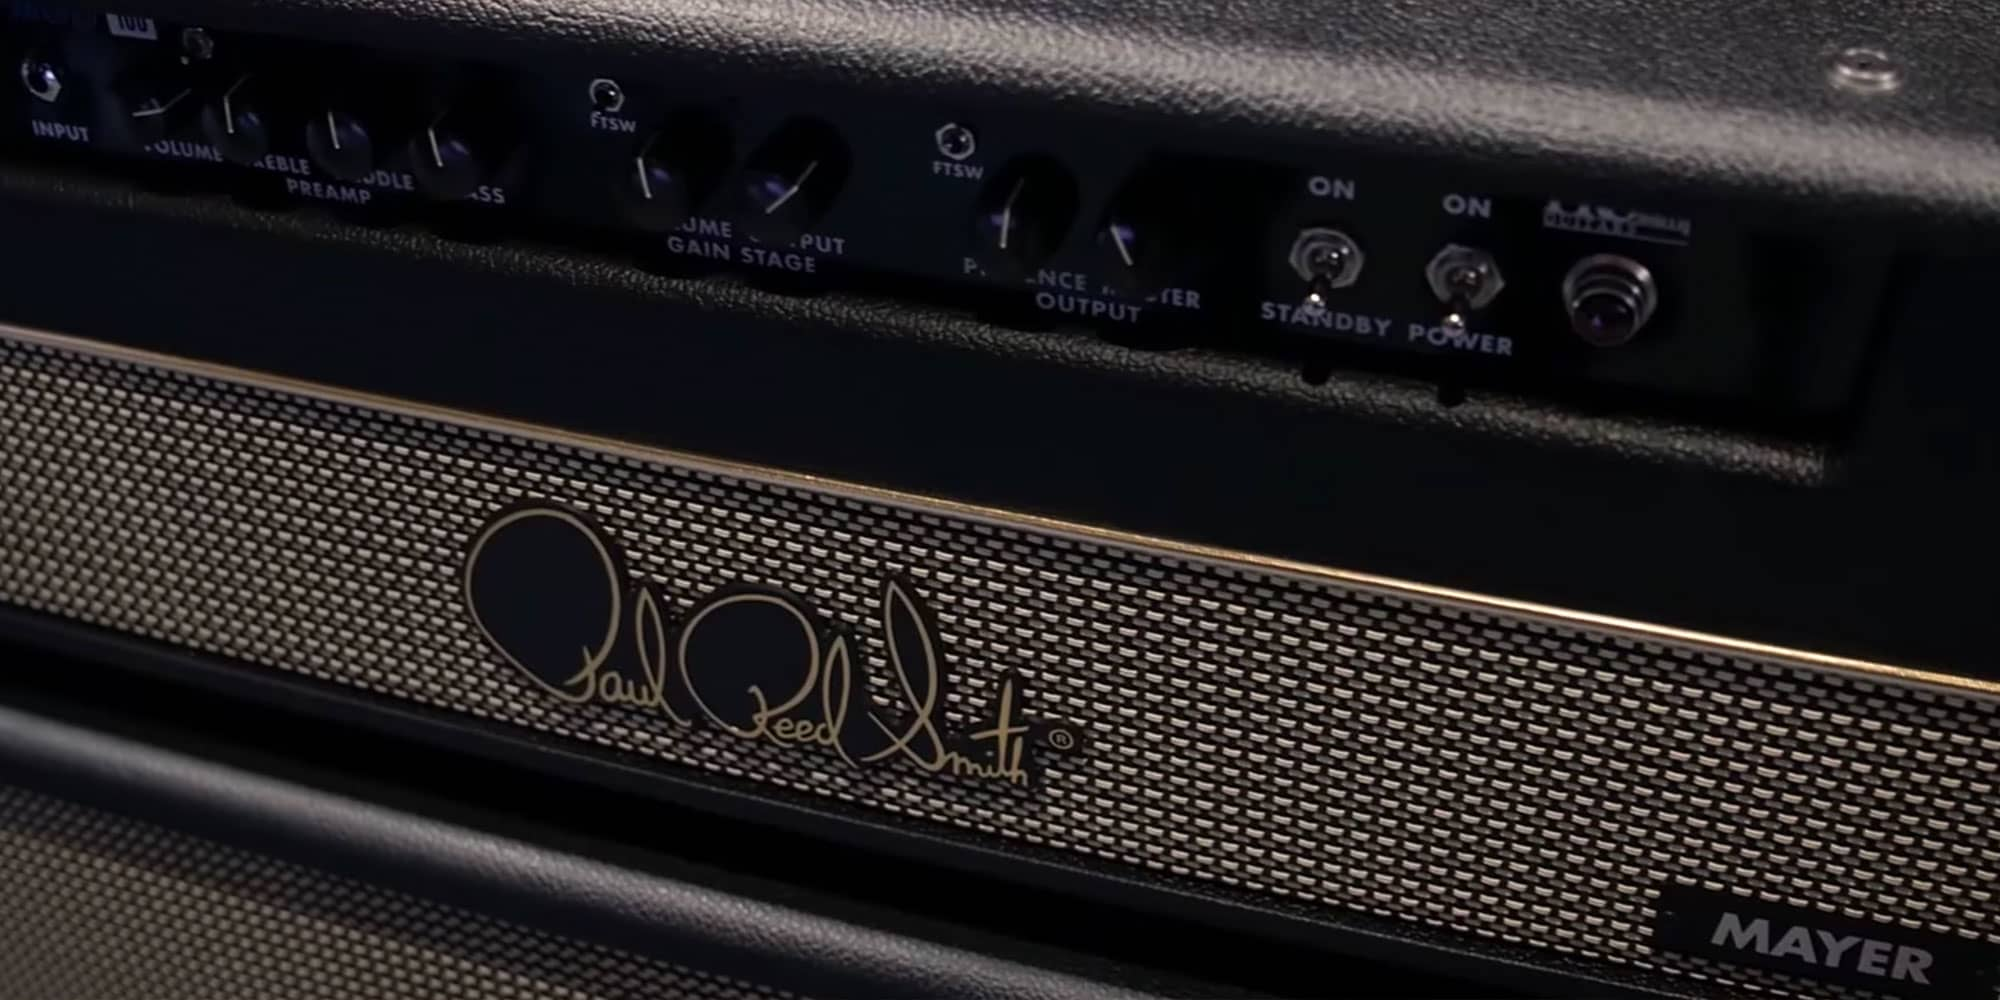 Prisma pro interior plat series amp tech series - Paul Reed Smith Unveiled A New Signature Amp For John Mayer At Namm This Year The J Mod 100 As Mr Reed Explains This Amp Was Designed In Collaboration